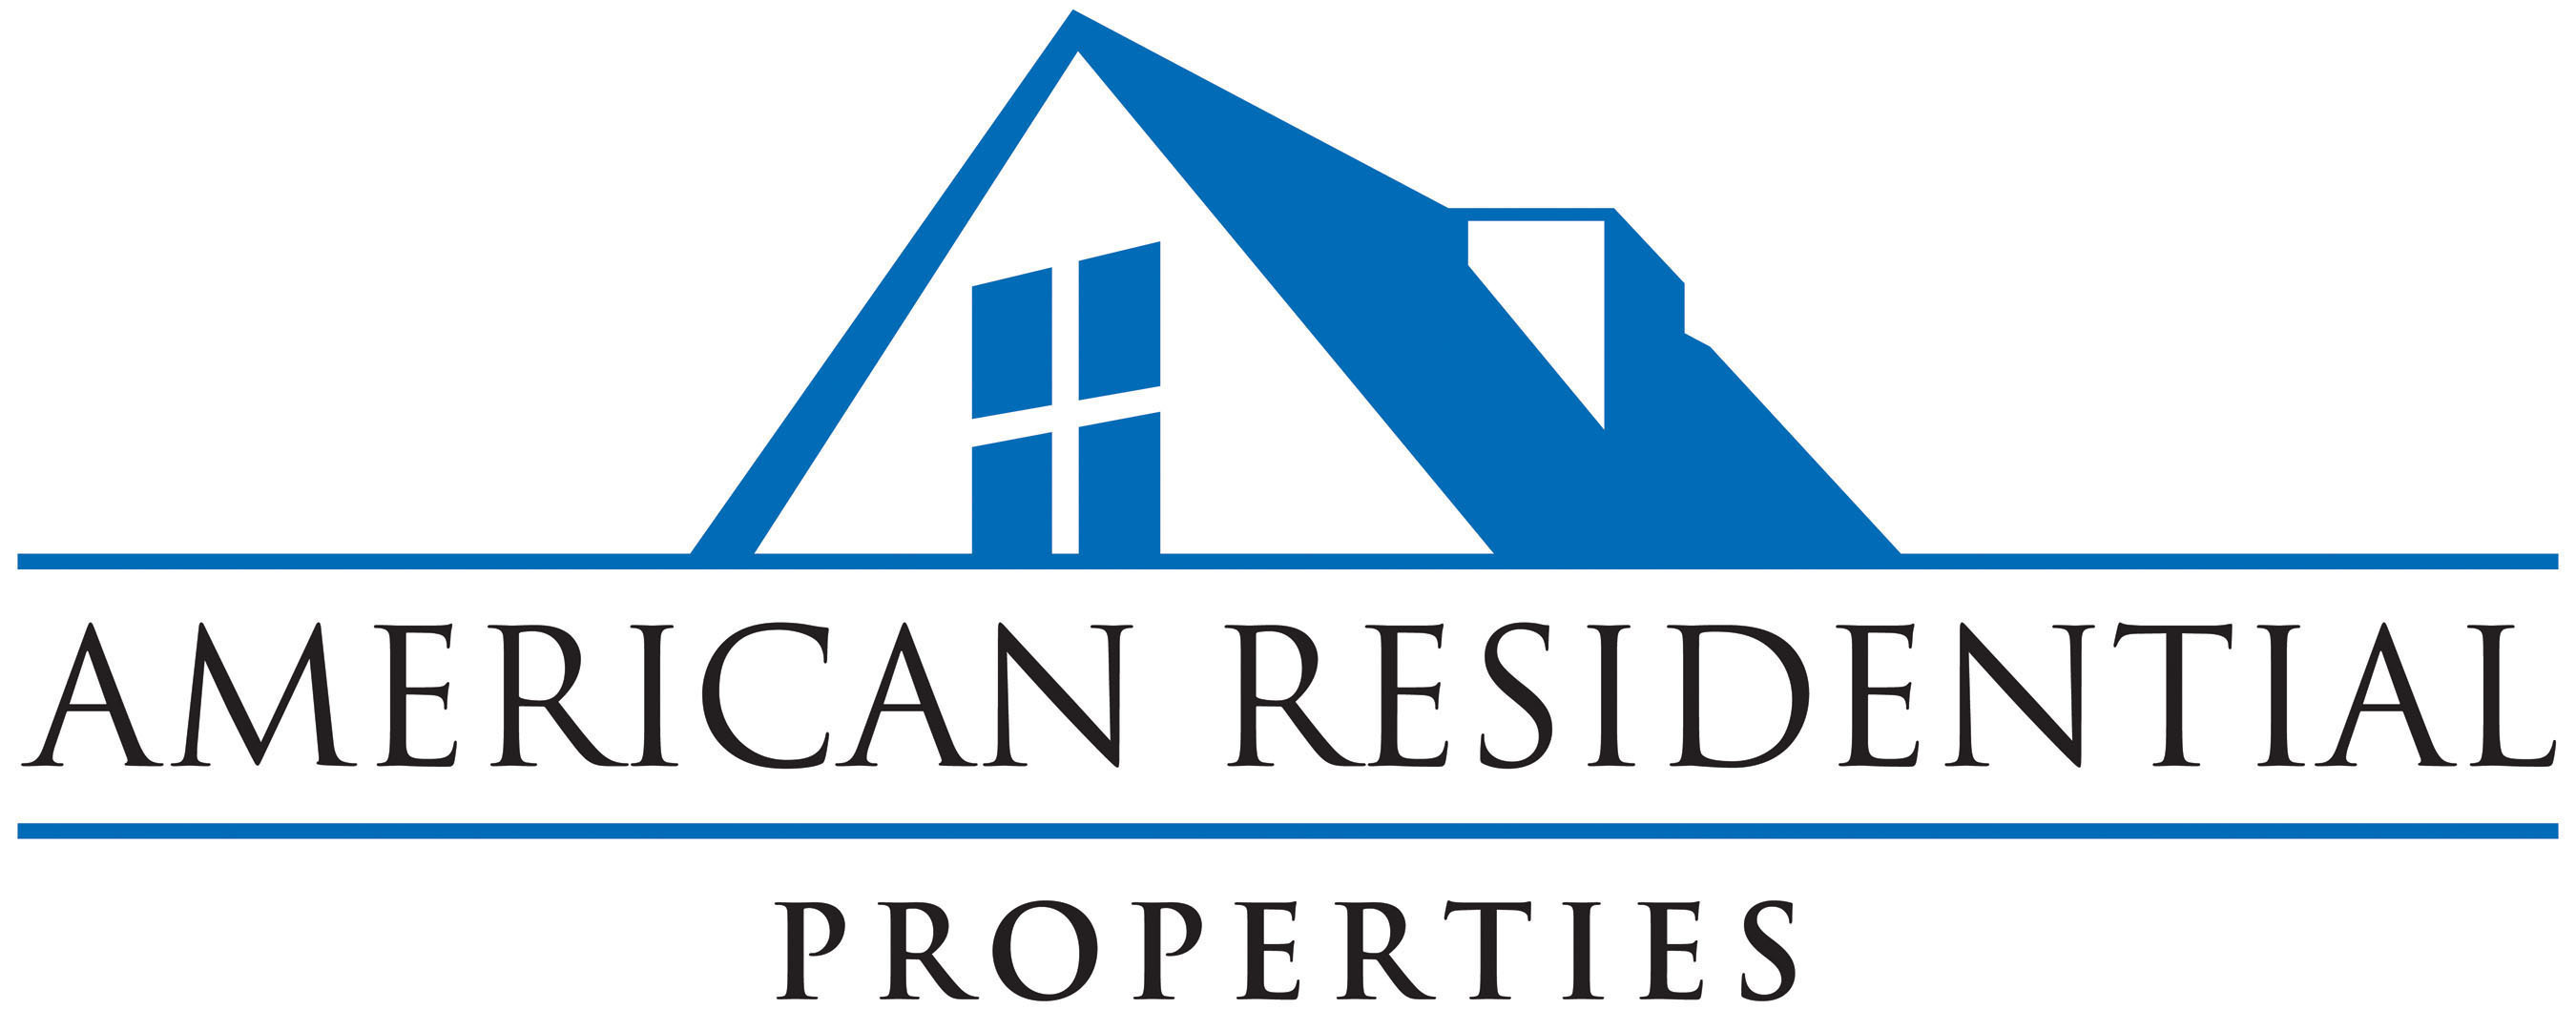 American Residential Properties Announces Cash Dividend